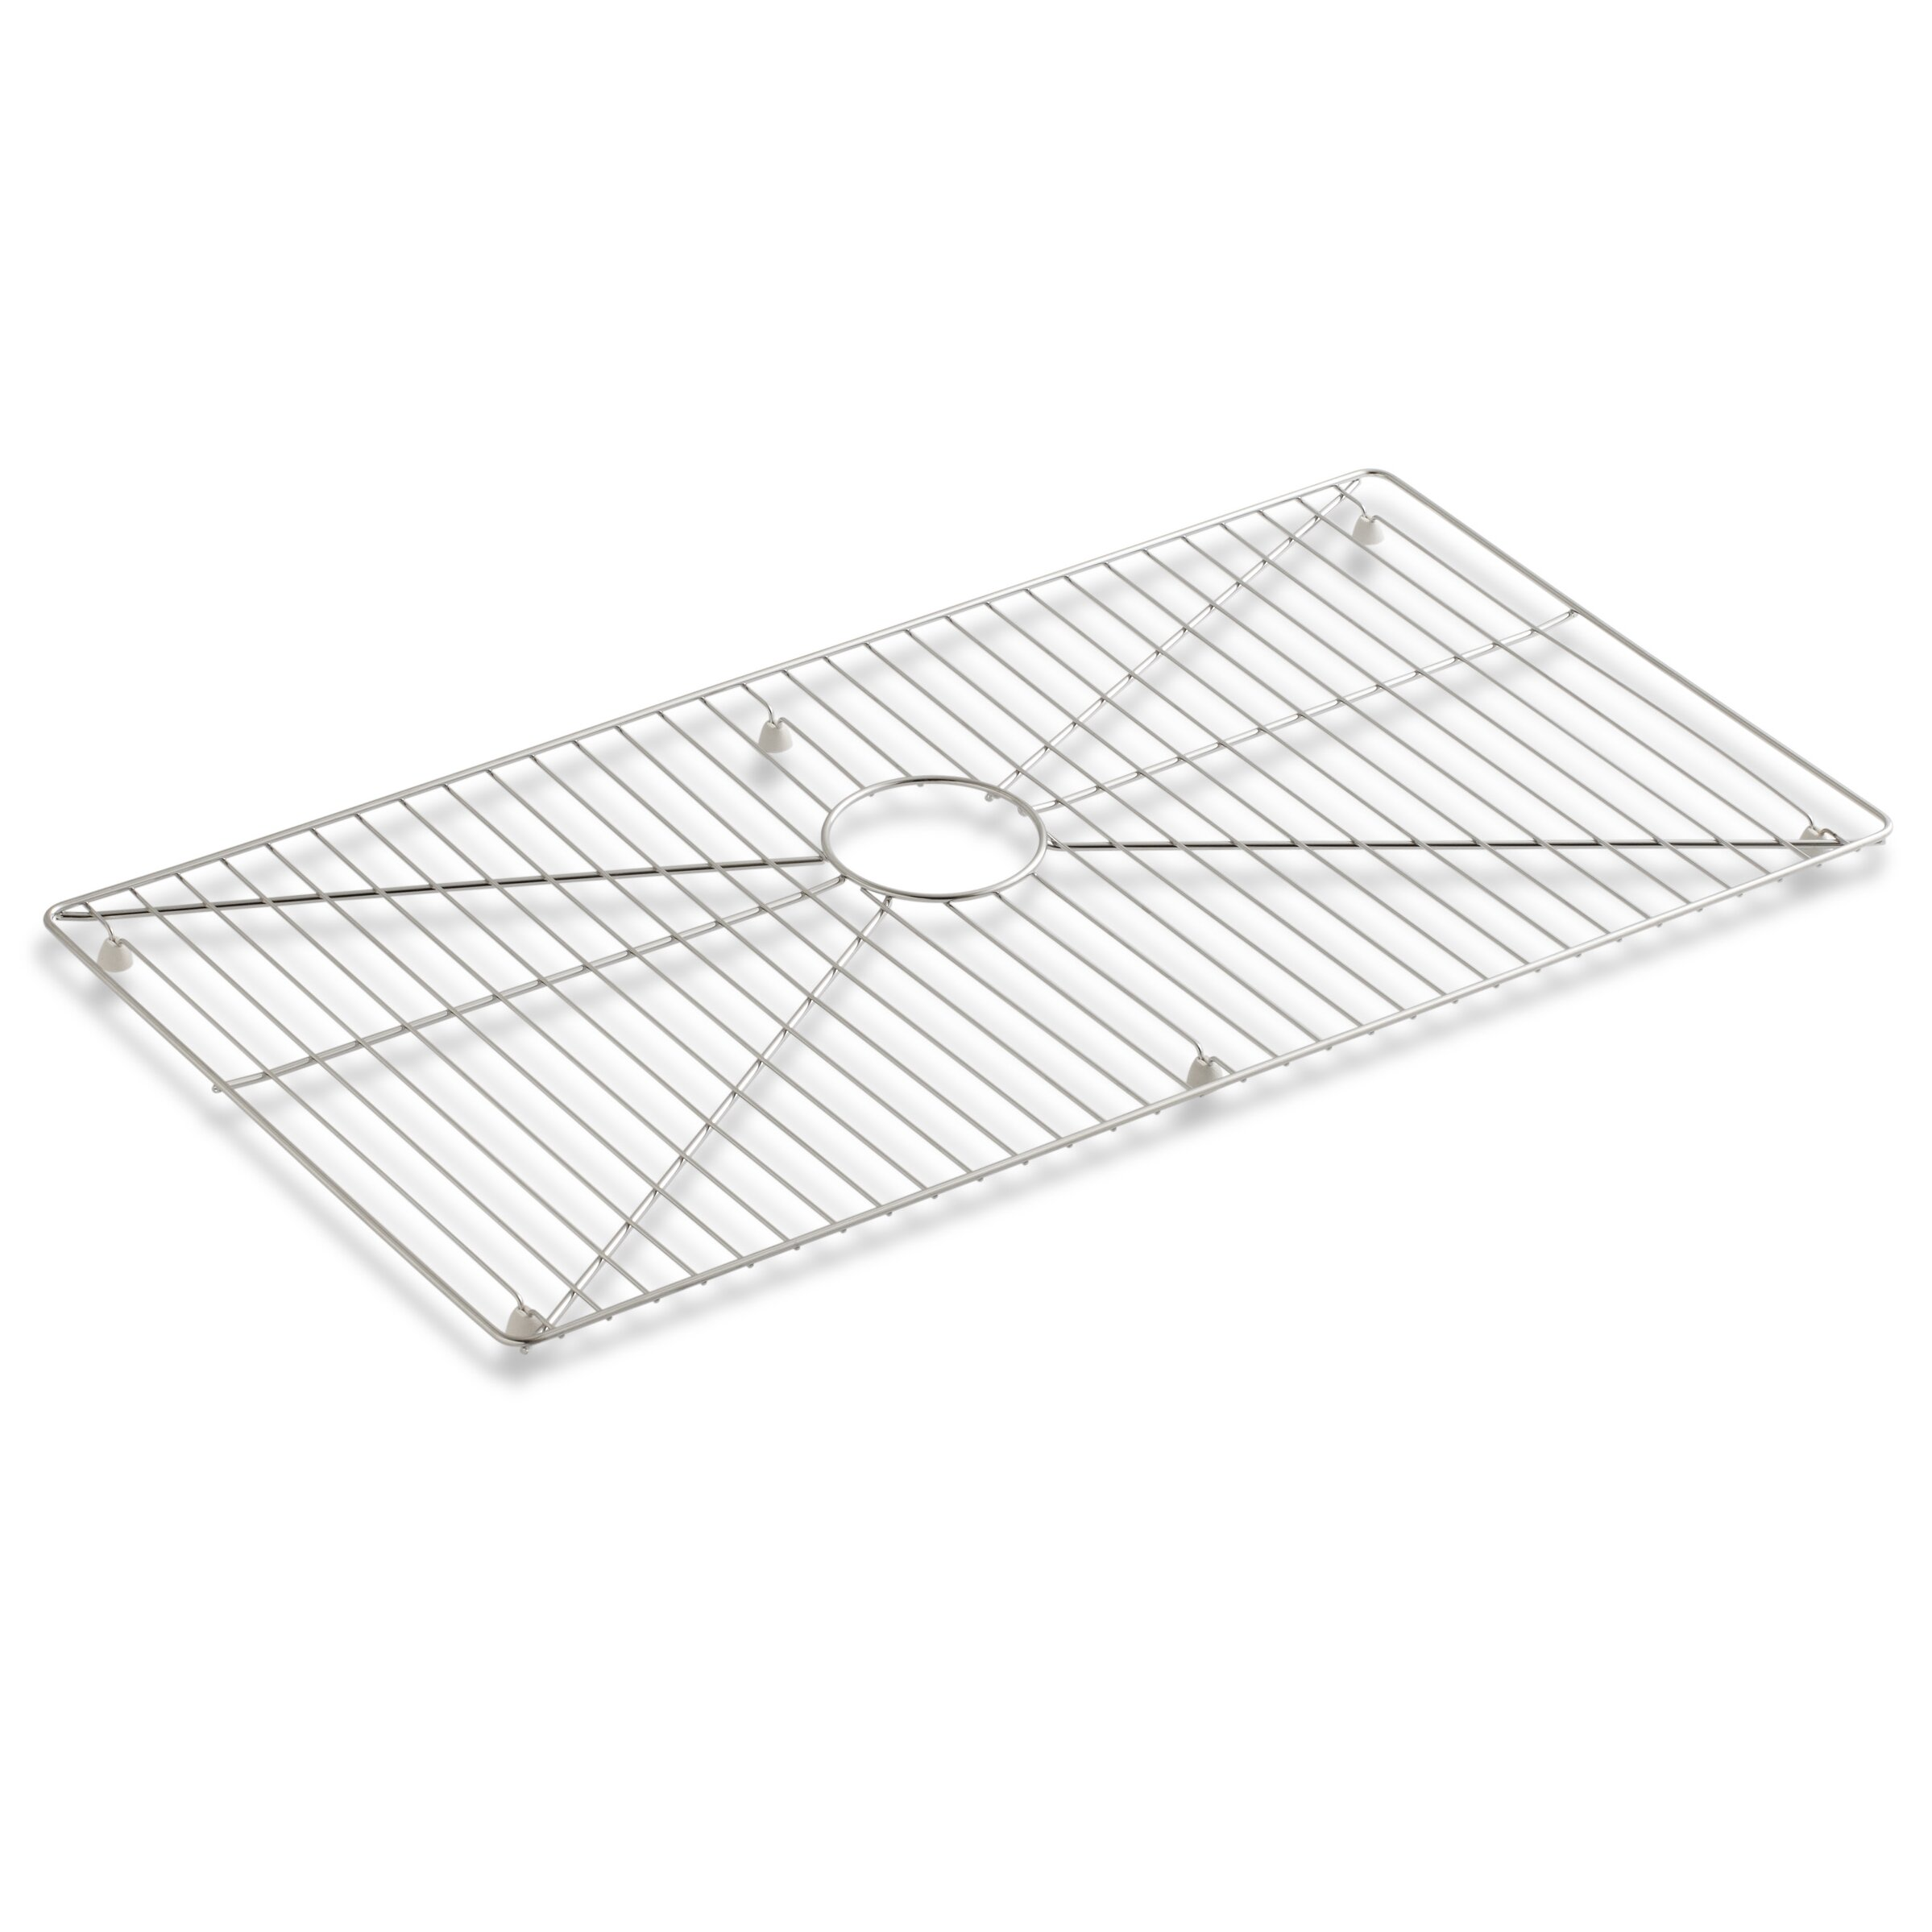 Kohler Stainless Apron Sink : Kohler Vault /Strive Stainless Steel Sink Rack, 32